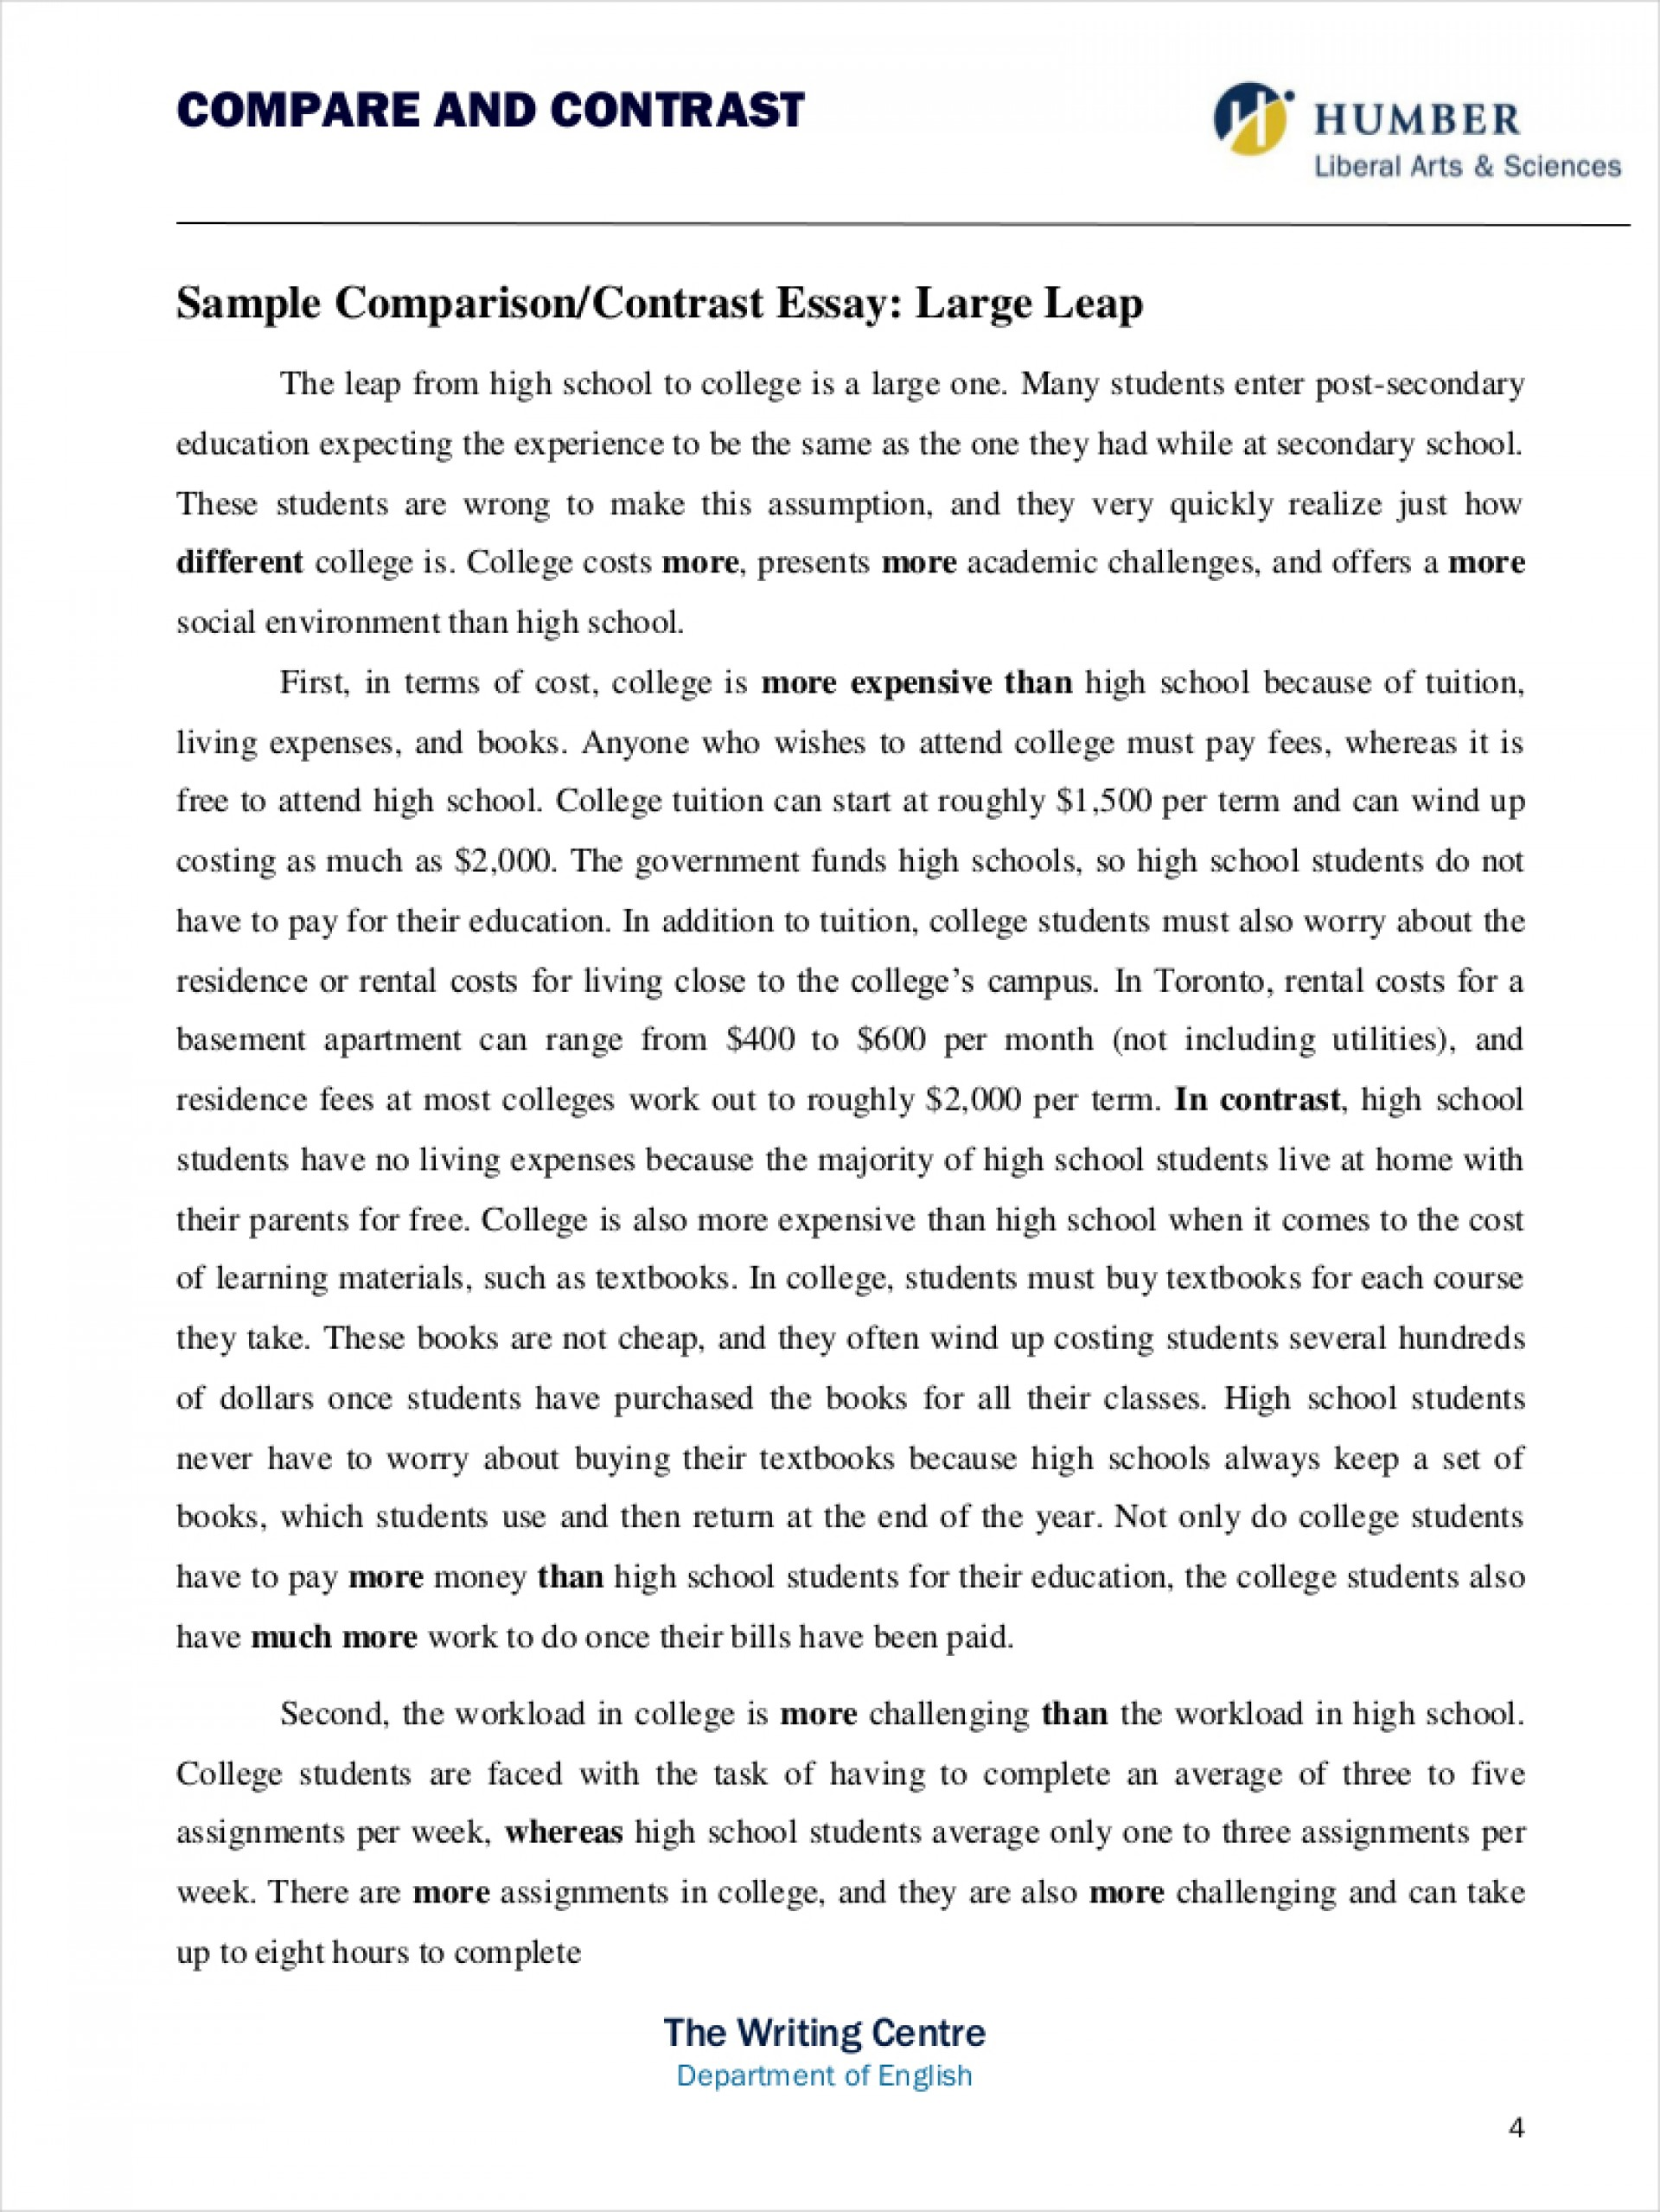 006 Compare And Contrast Essay Examples Comparative Samples Free Pdf Format Download Throughout Comparison Thesis Coles Thecolossus Co Within Ex 5th Grade 4th 6th 3rd Magnificent Topics 1920